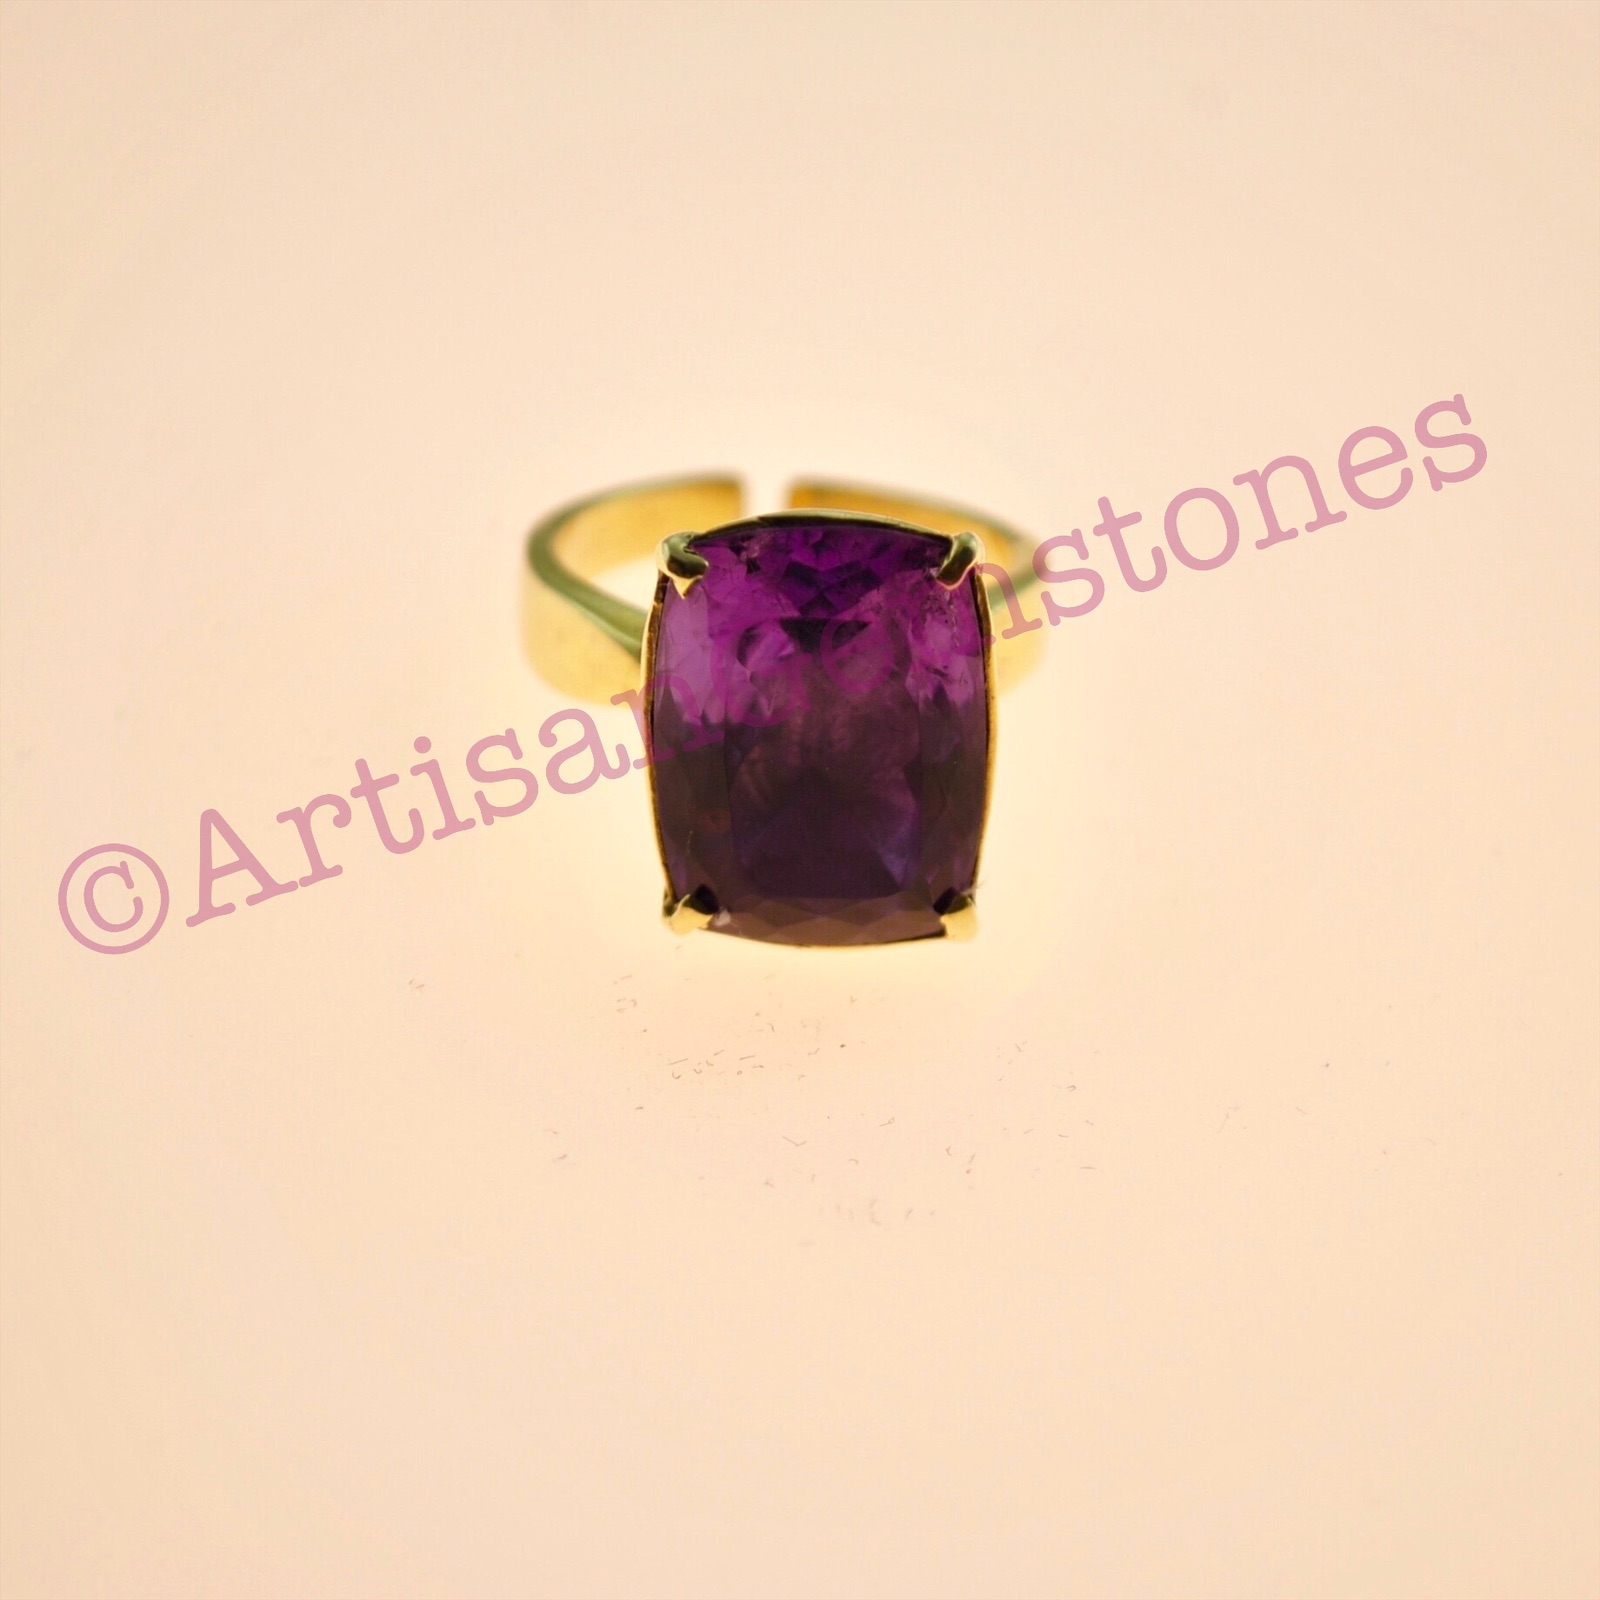 Rectangle Amethyst ring in 925 Silver 22k Gold vermeil in adjustable size